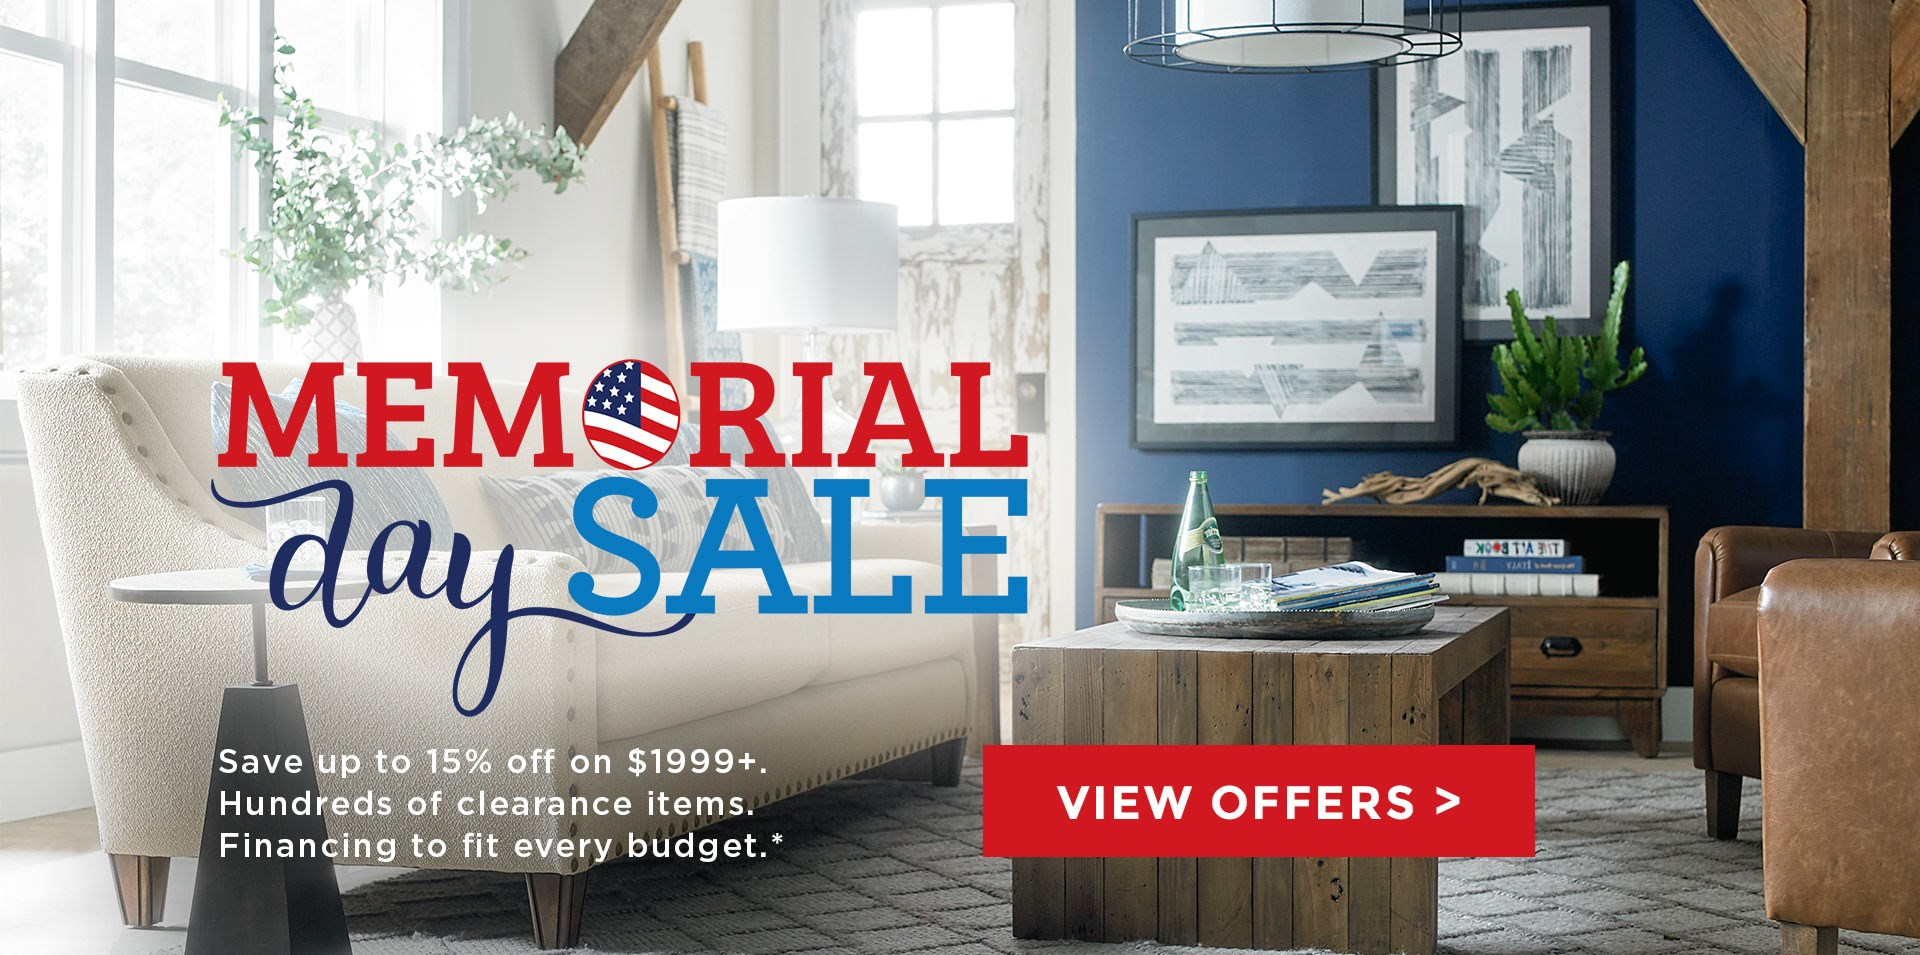 Memorial Day Sale Offers